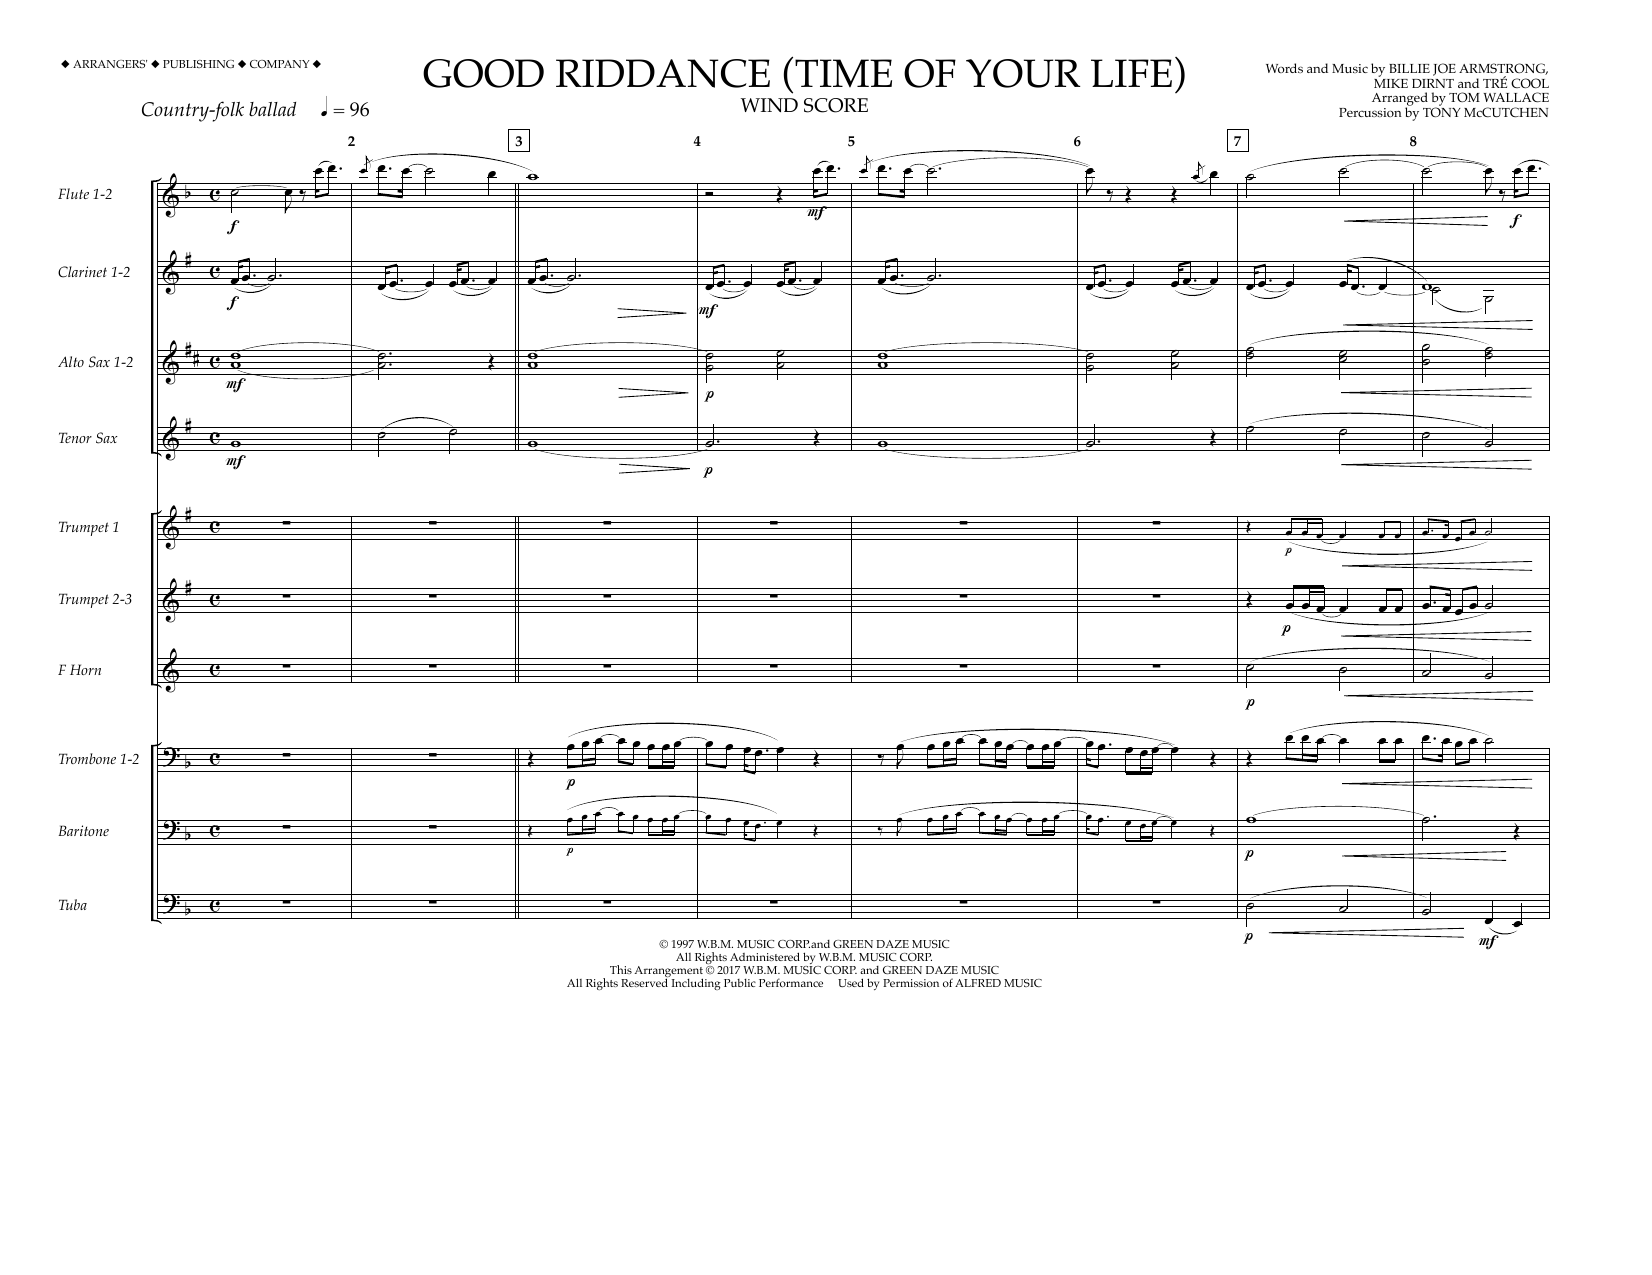 Good Riddance (Time of Your Life) - Wind Score Sheet Music